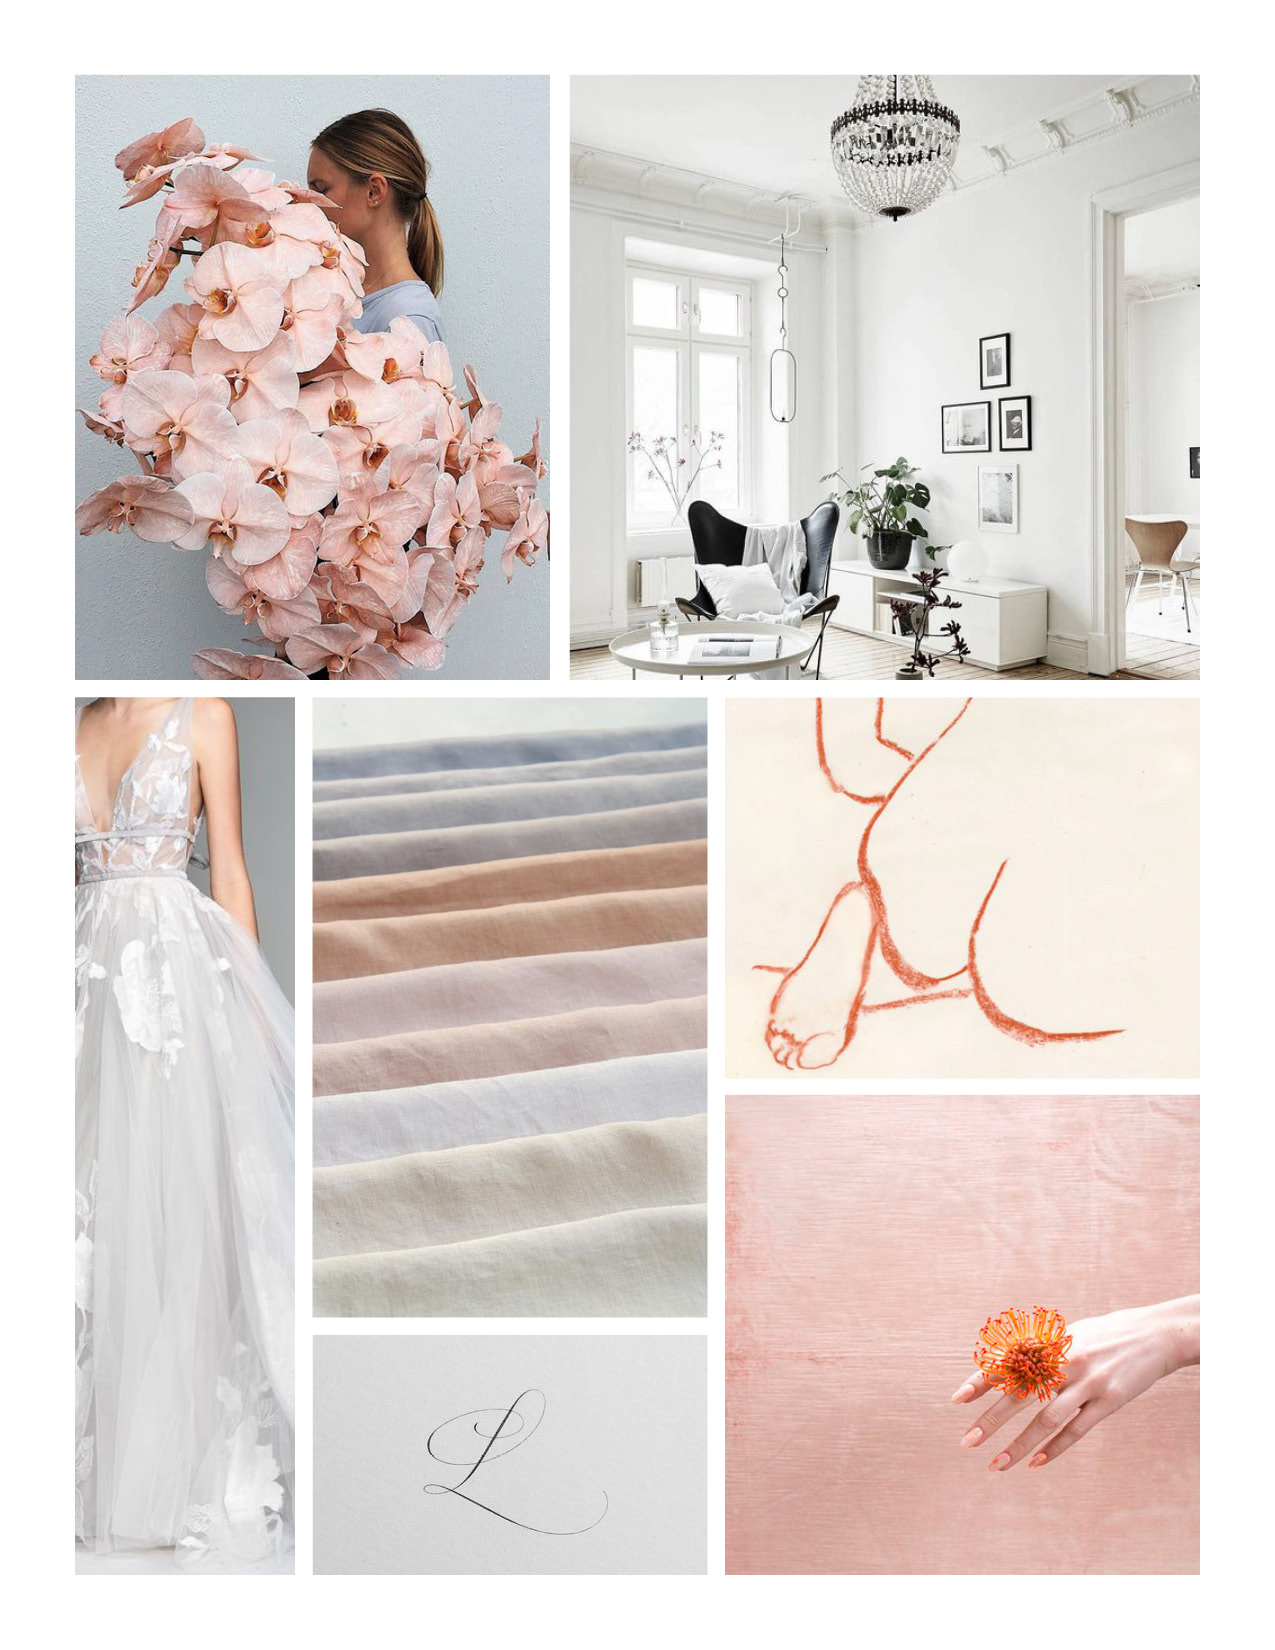 Lande, Melissa - Luxlight Mood Board.jpg